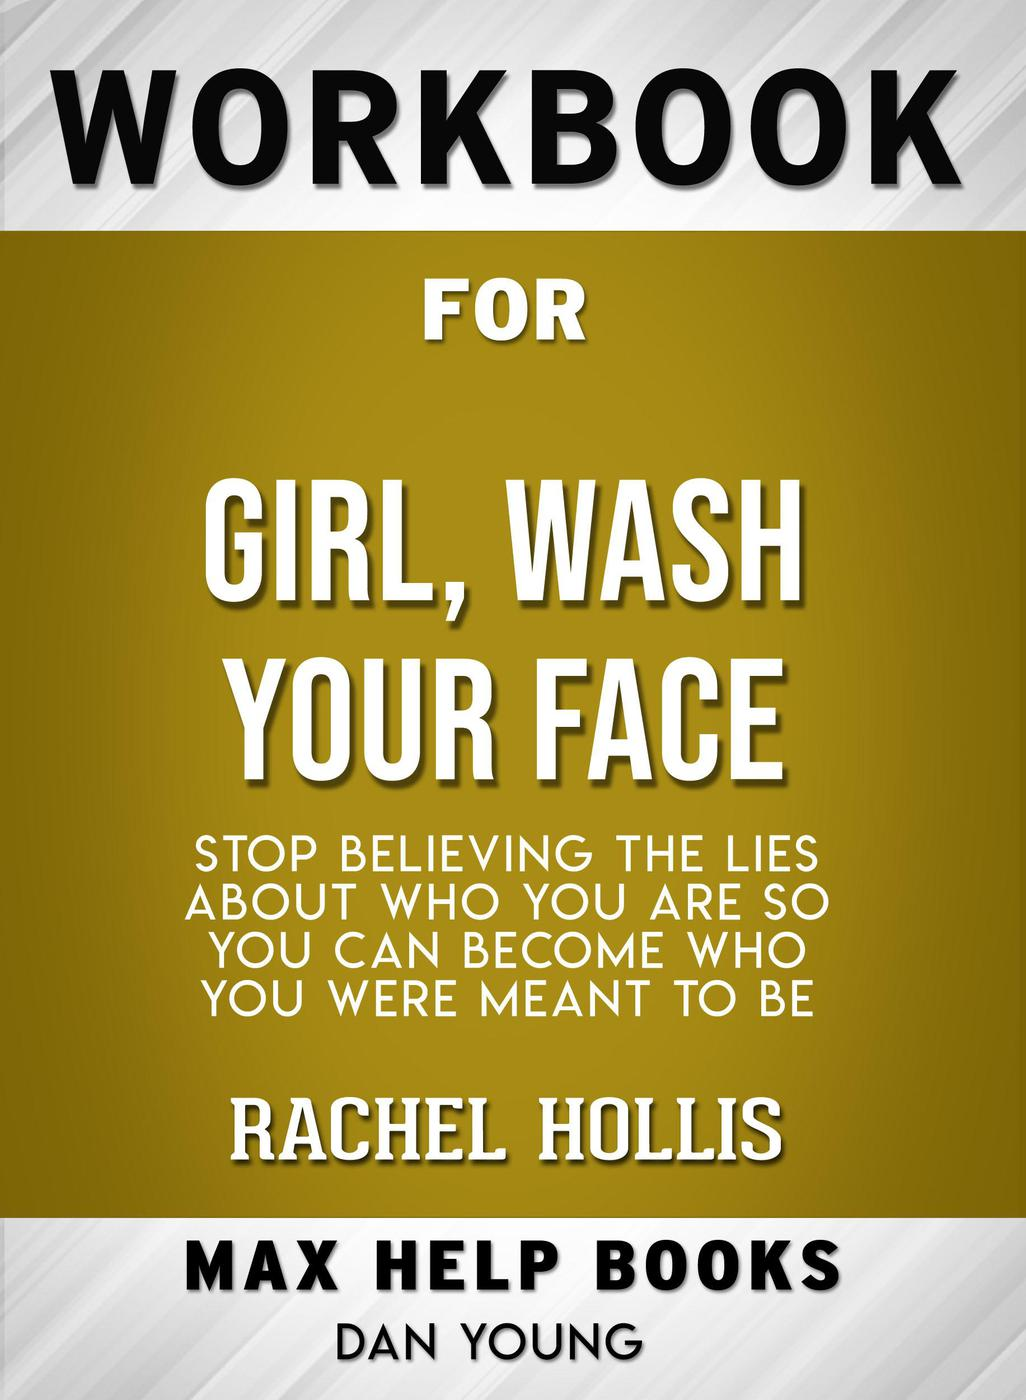 Workbook For Girl Wash Your Face Avaxhome